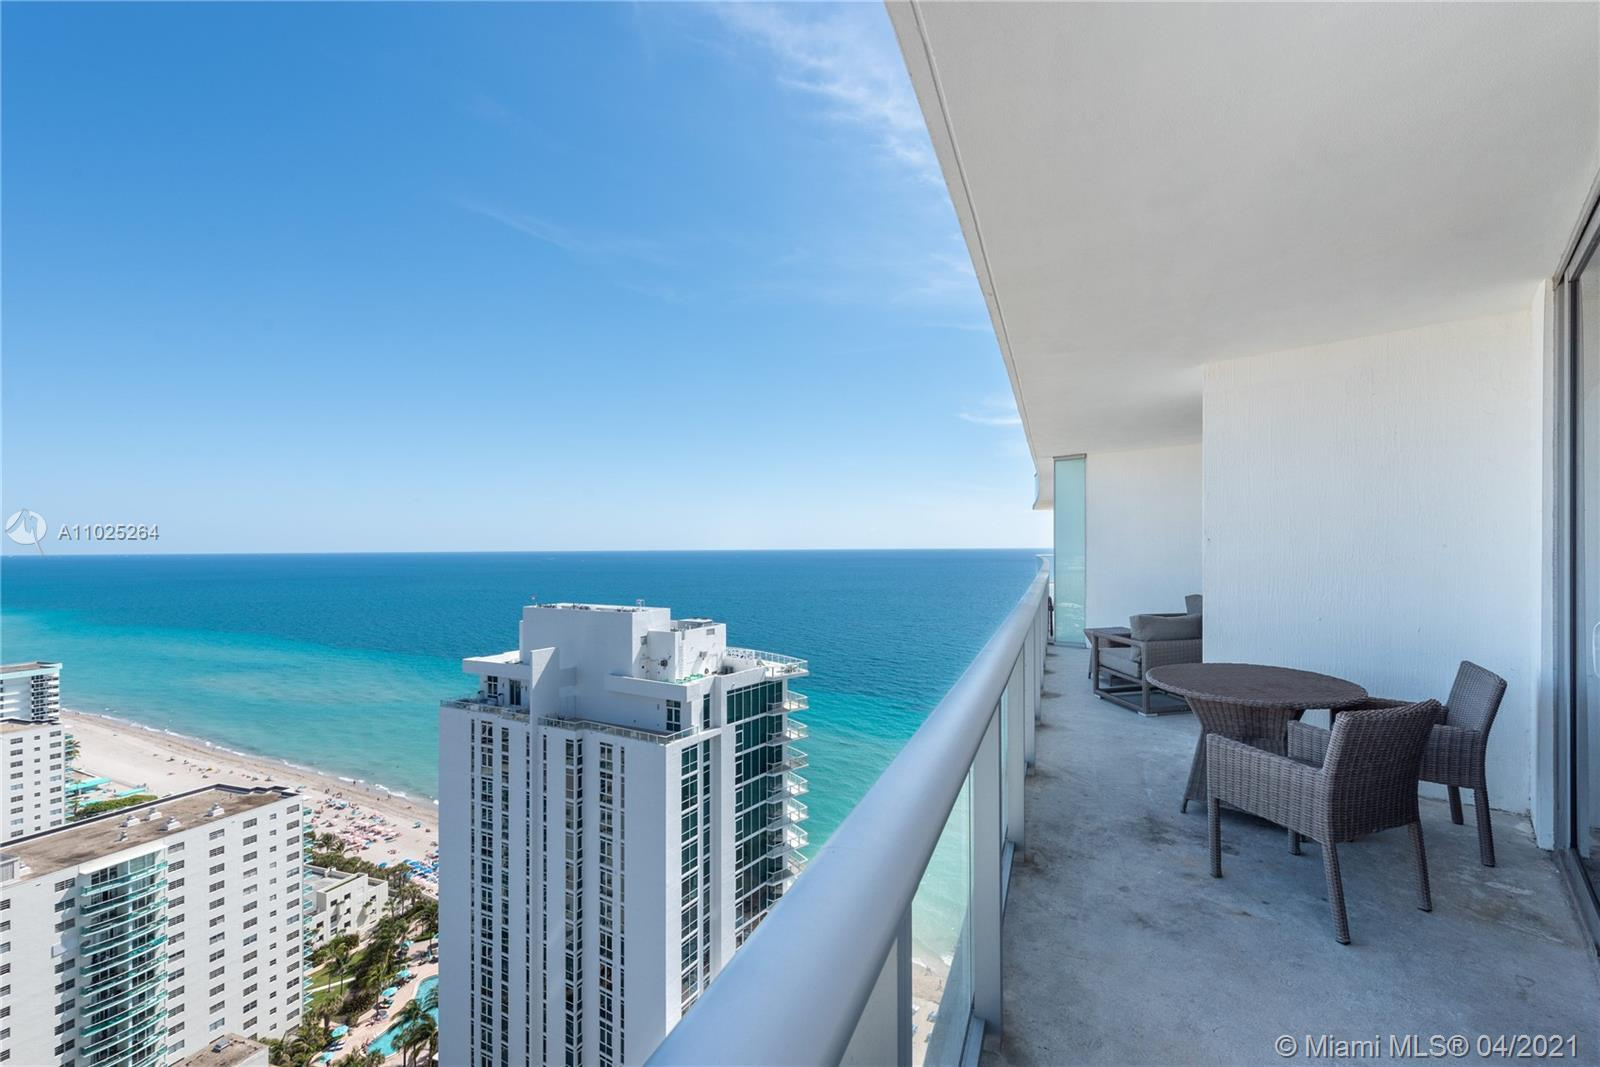 2 bedroom, 2 baths, fully furnished unit. Great view to the north with some ocean view. HYDE RESORT